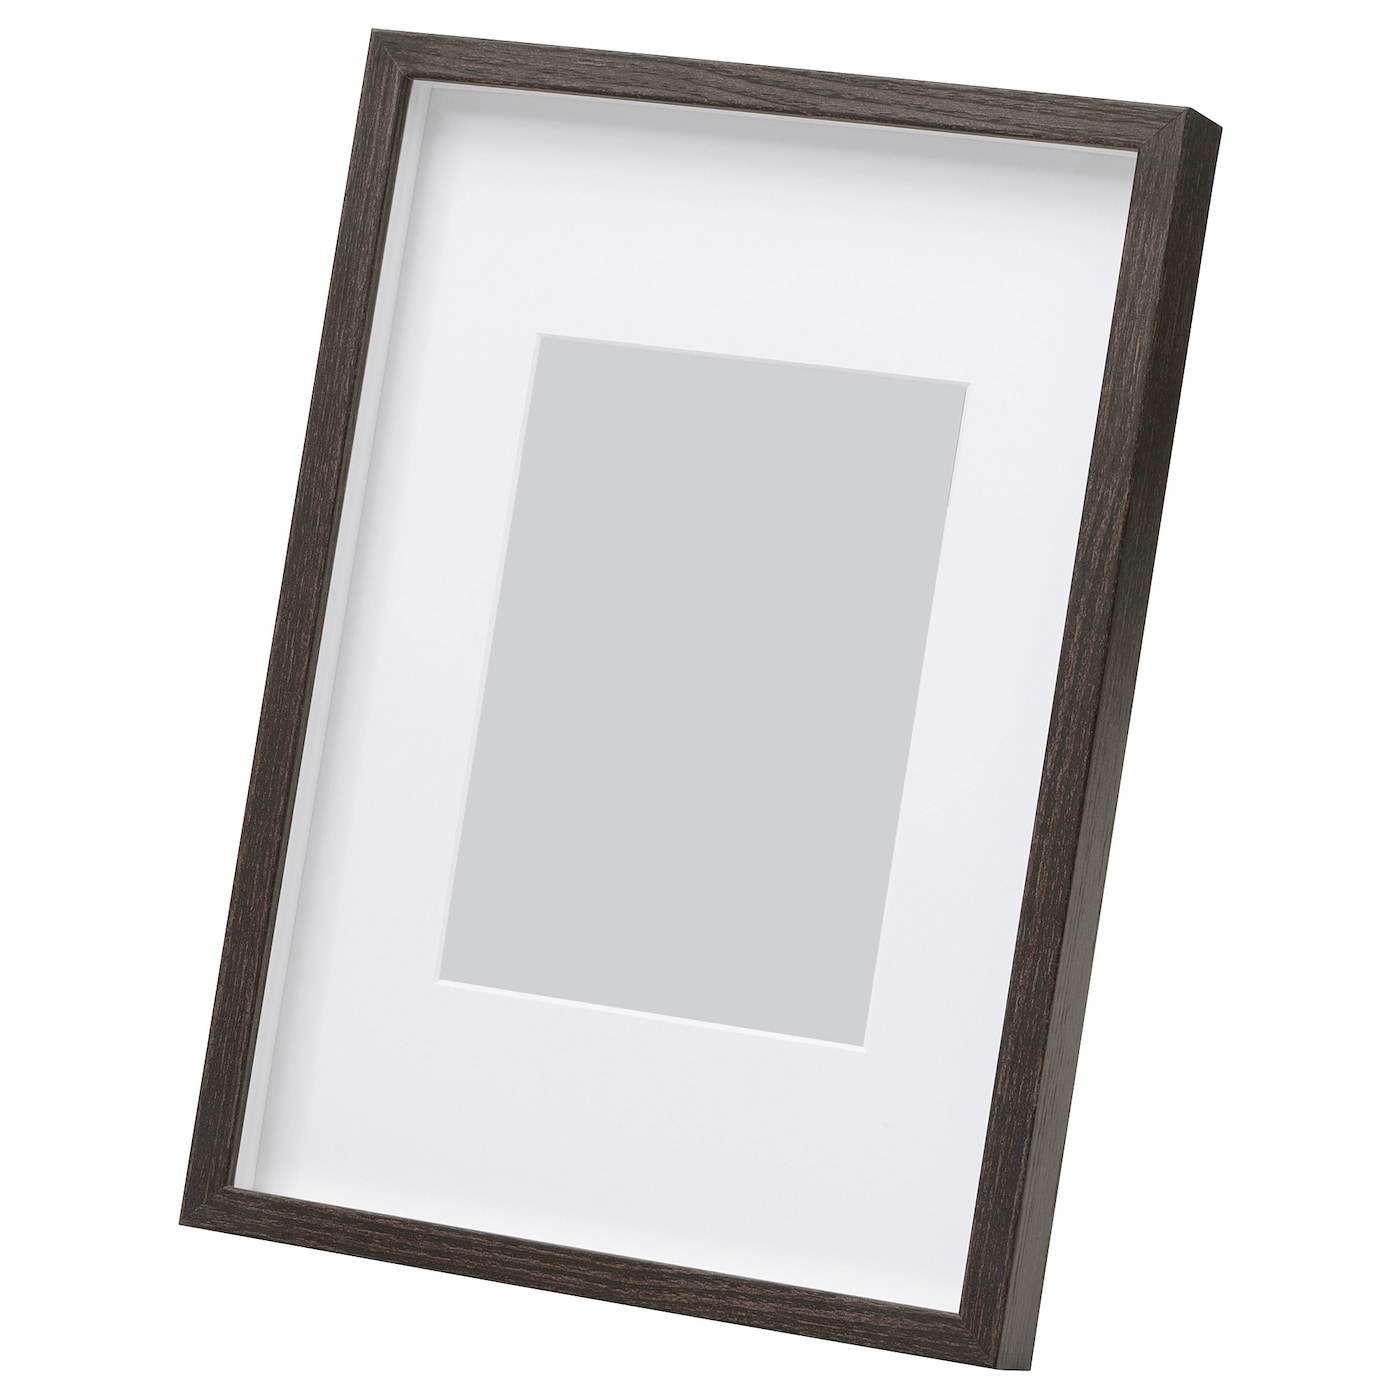 Picture Frames & Photo Frames | IKEA Ireland - Dublin